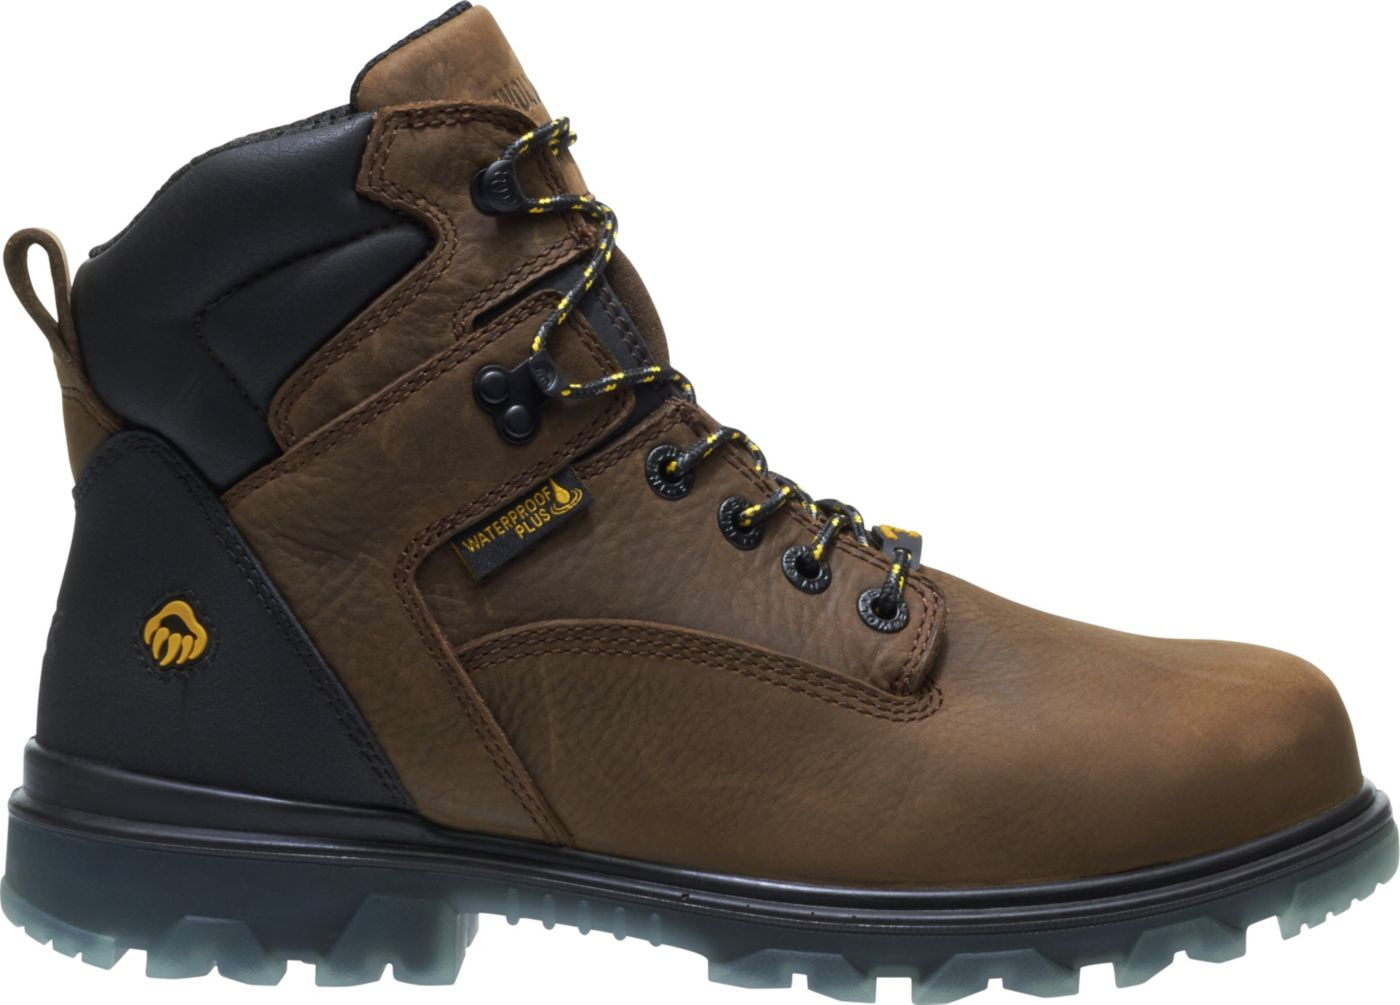 Wolverine Men's I-90 EPX Carbonmax 6'' 400g Waterproof Composite Toe Work Boots